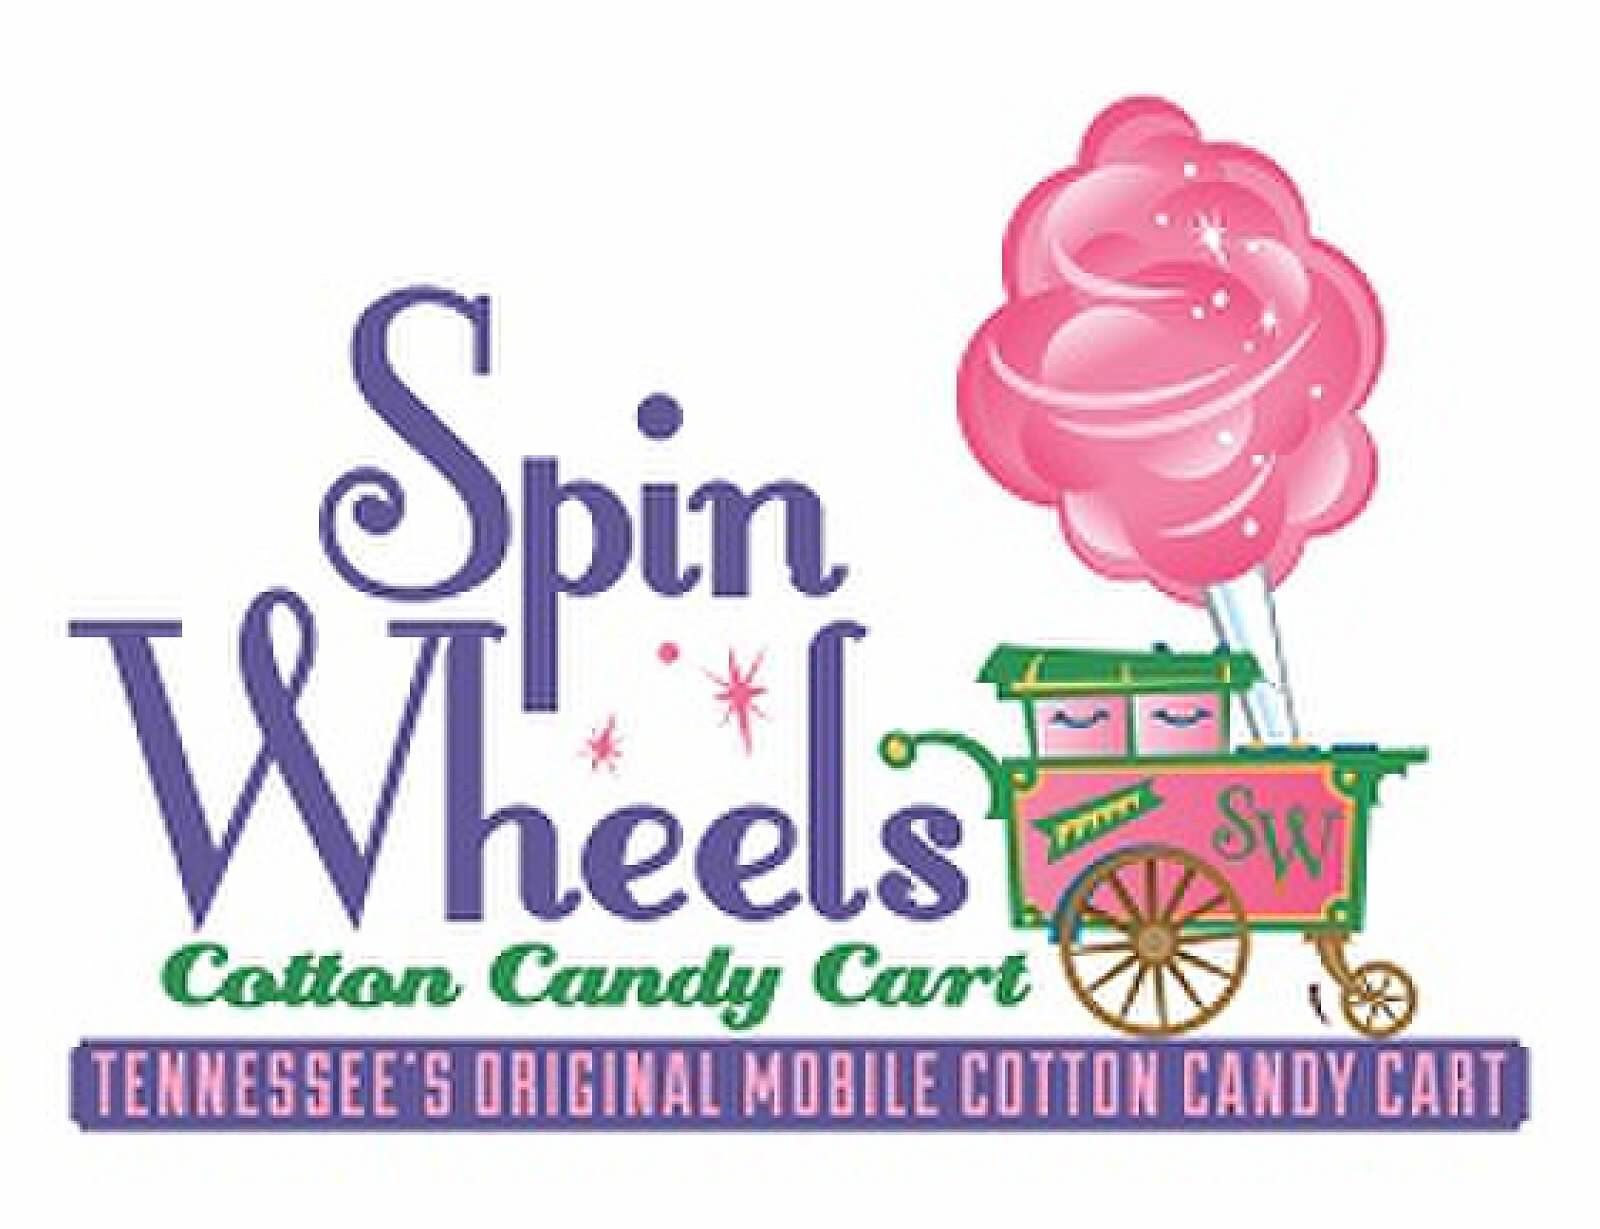 Pin by Heather Newman on Spin Wheels Cotton Candy Cart